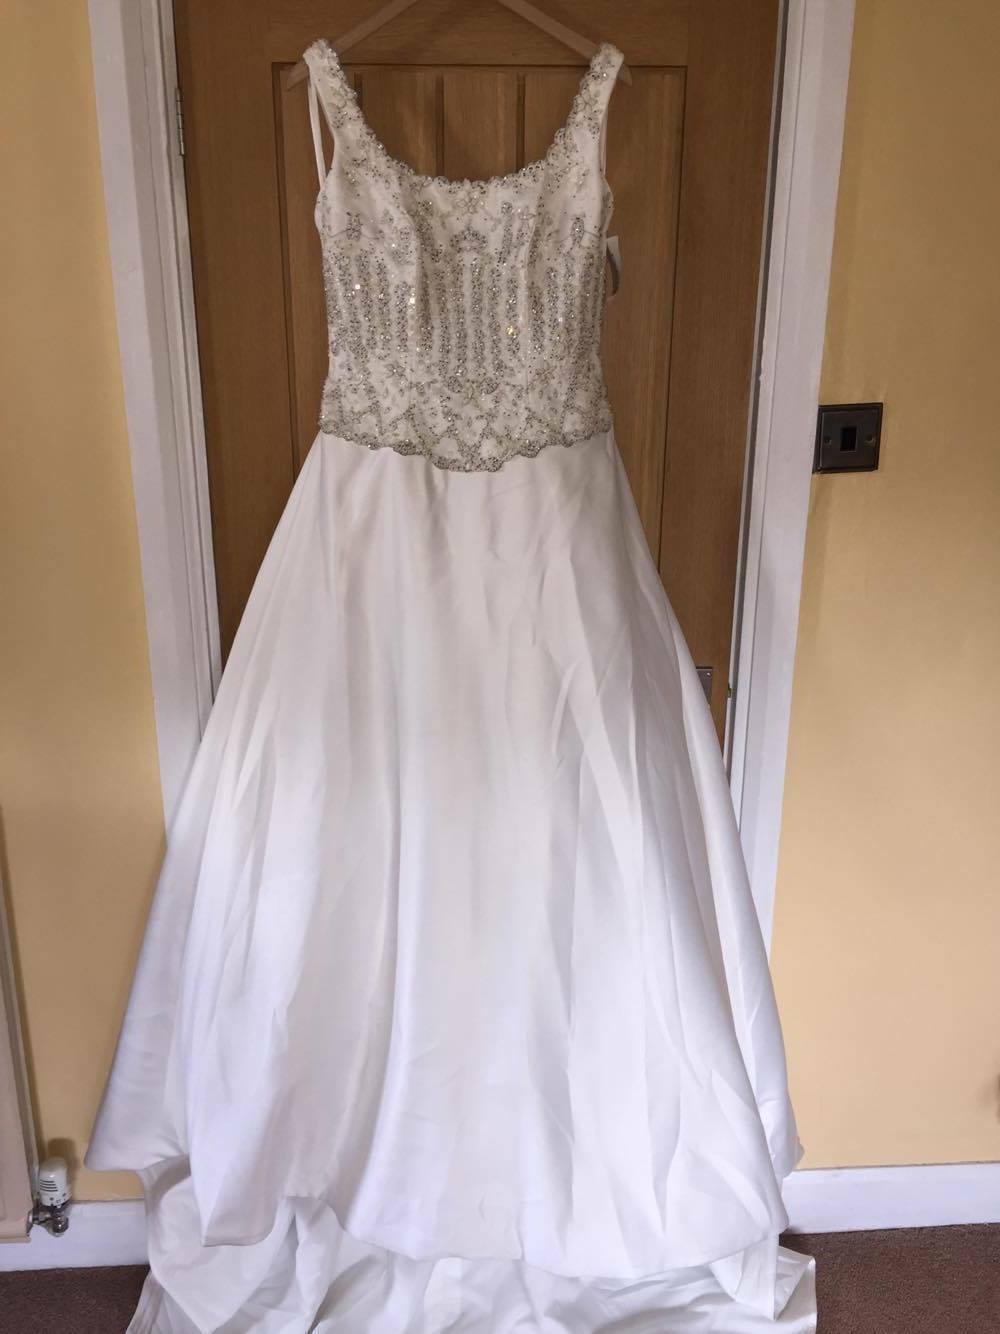 New mori lee satin ivory wedding dress style 3815 uk 14 for Mori lee wedding dress prices